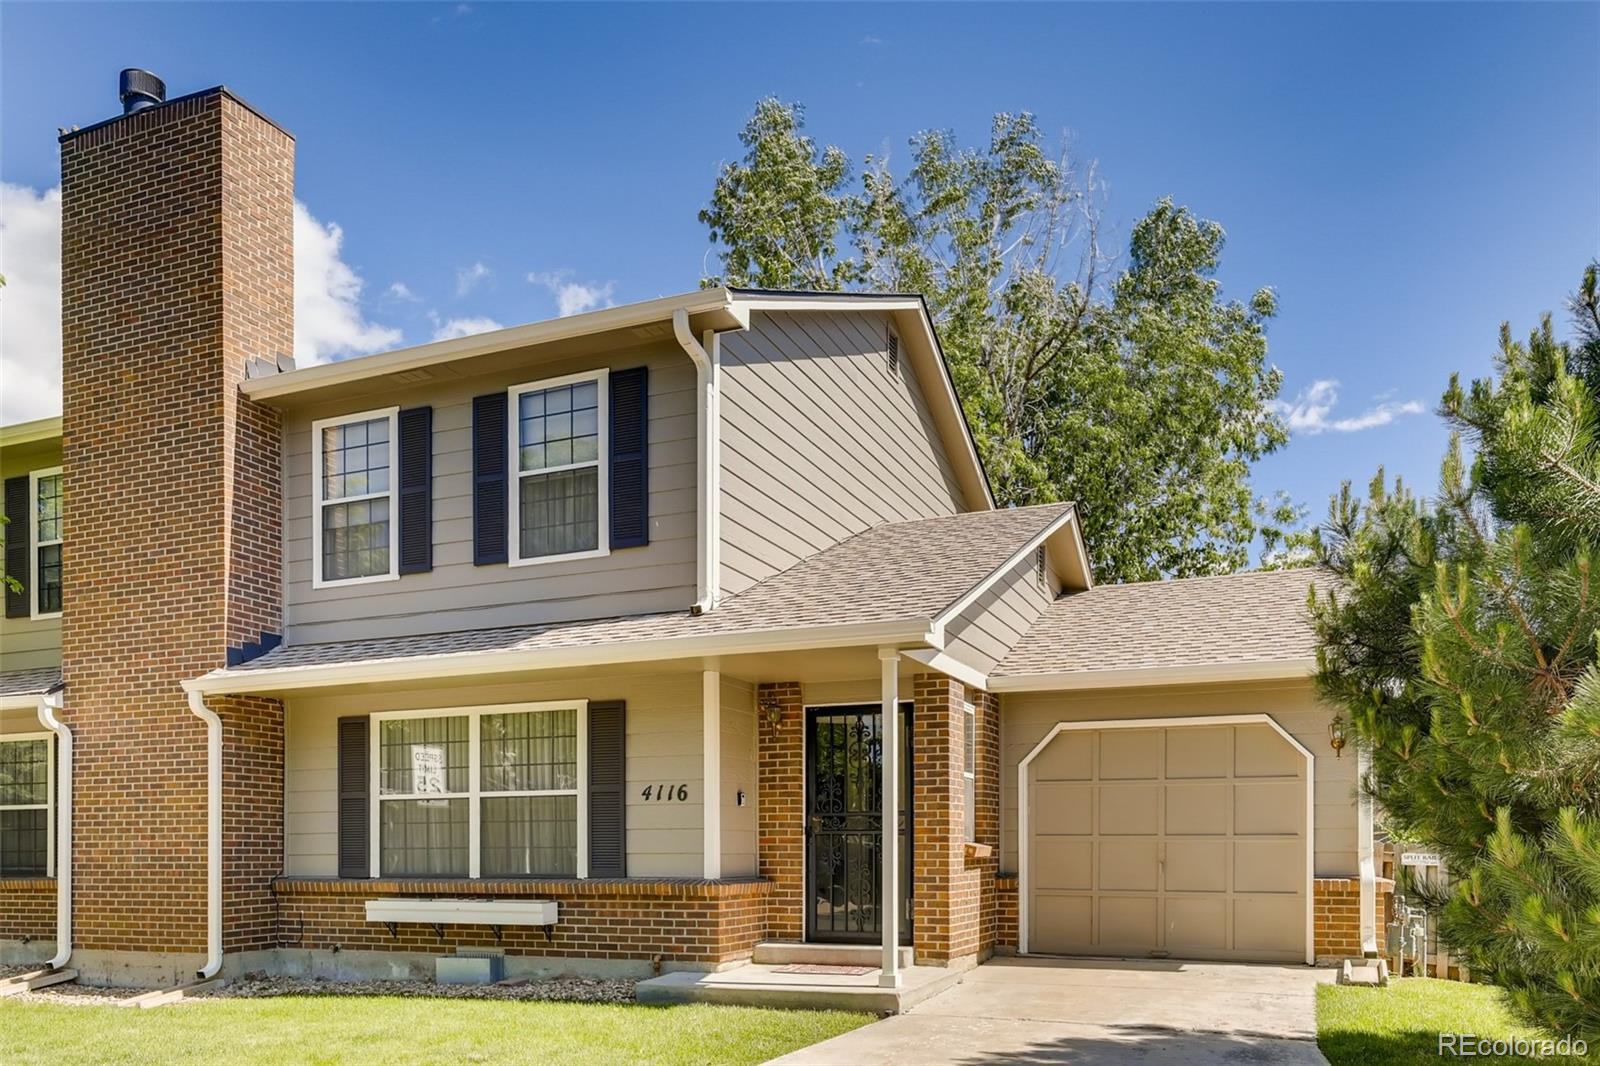 4116 W 111th Circle Property Photo - Westminster, CO real estate listing